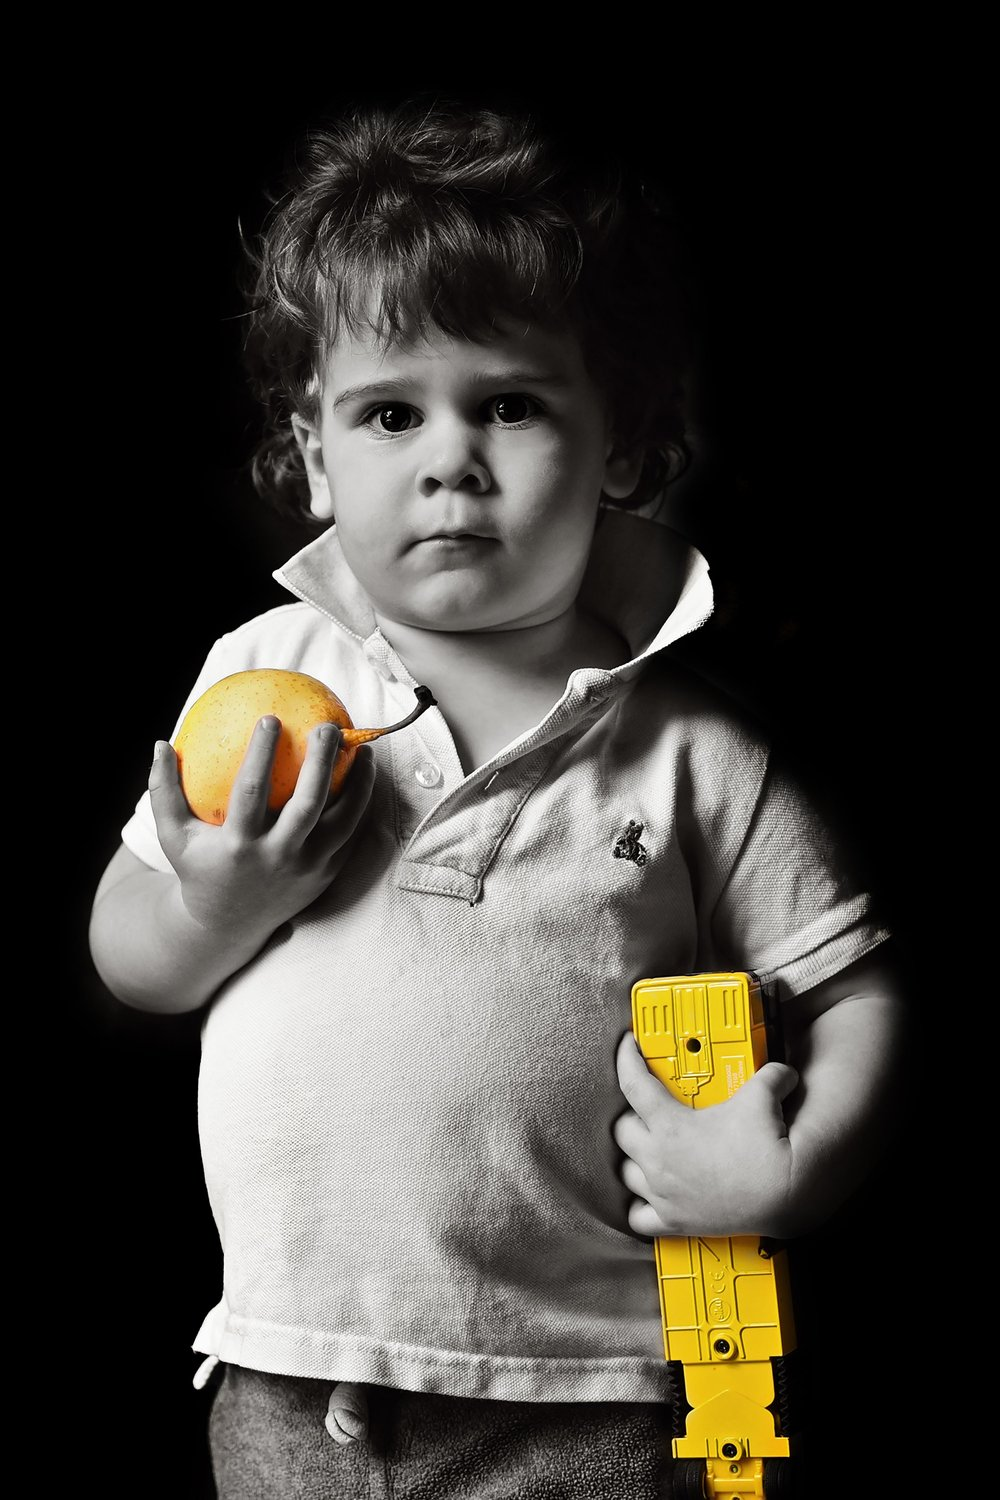 DSC_3209 blake with pear and bus BW 1 colorized 10x15.jpg